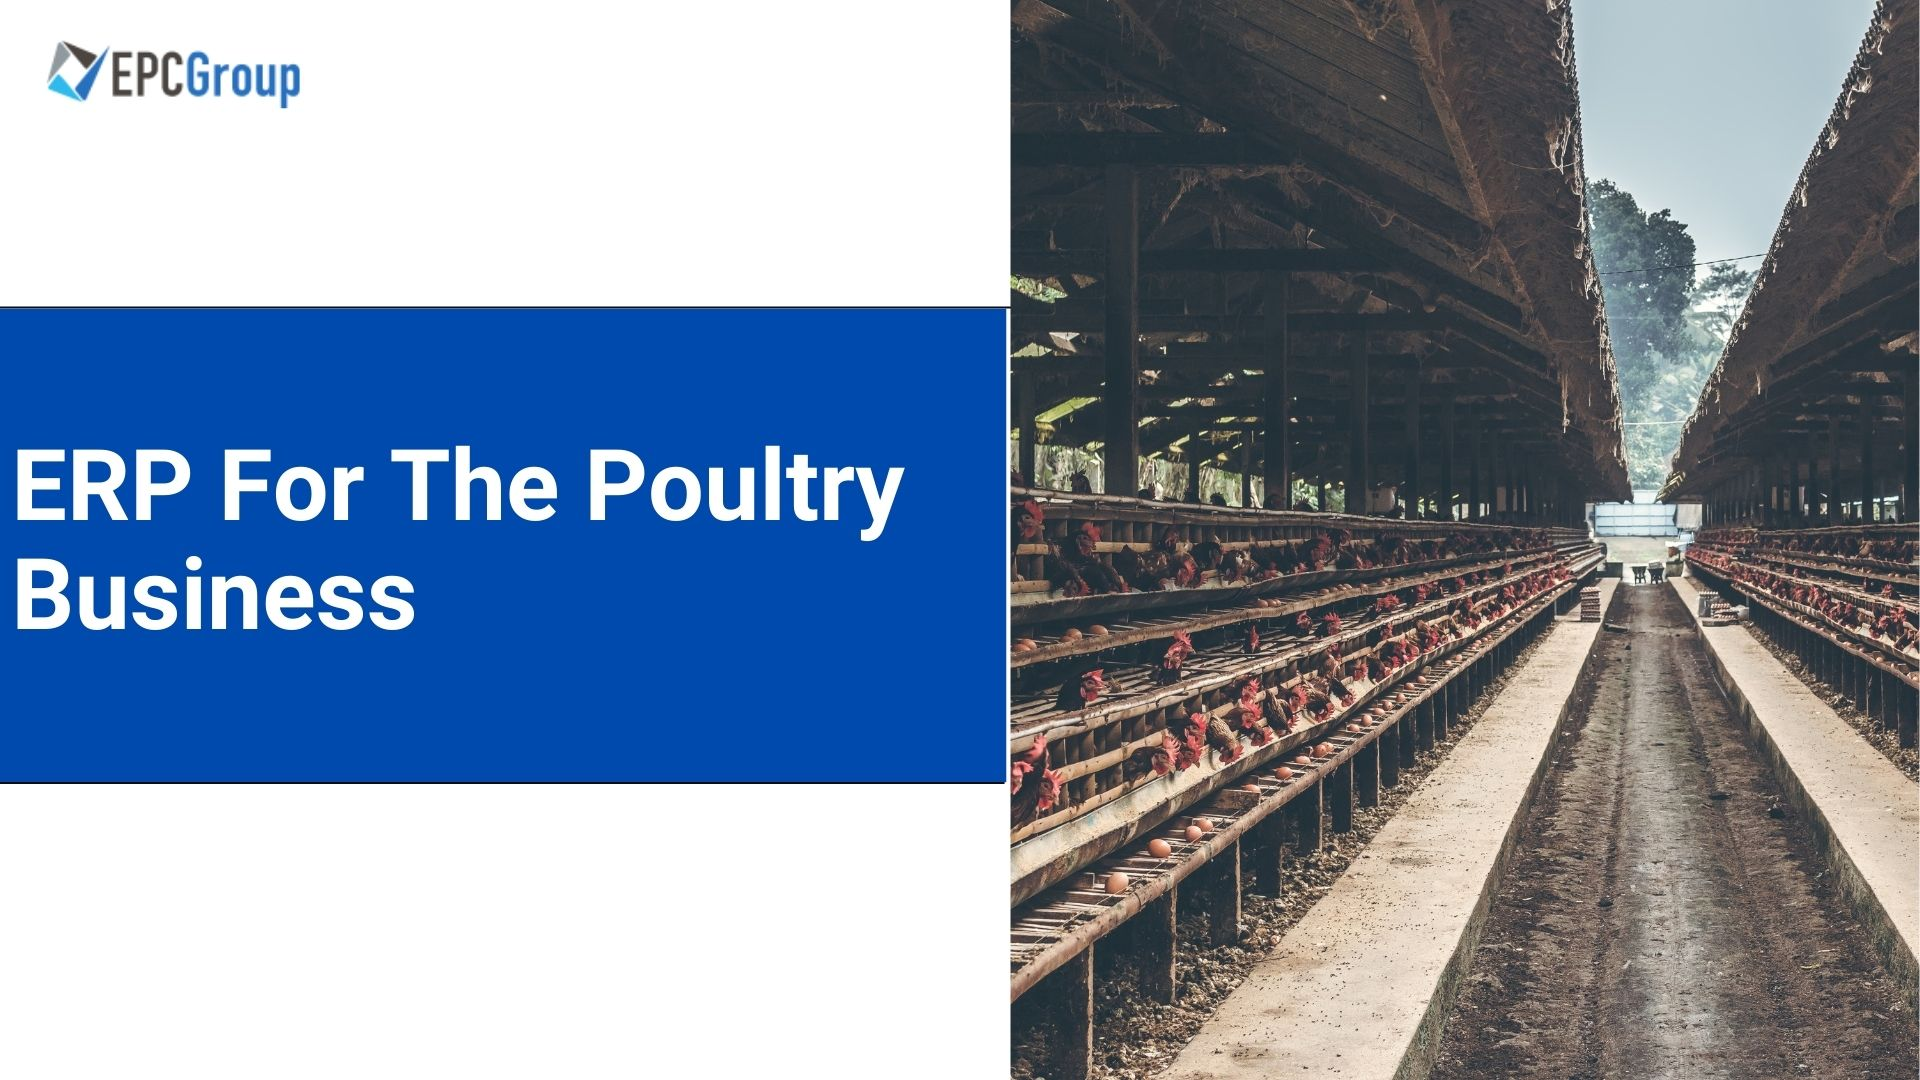 What Is The Best ERP Software For The Poultry Business? - thumb image